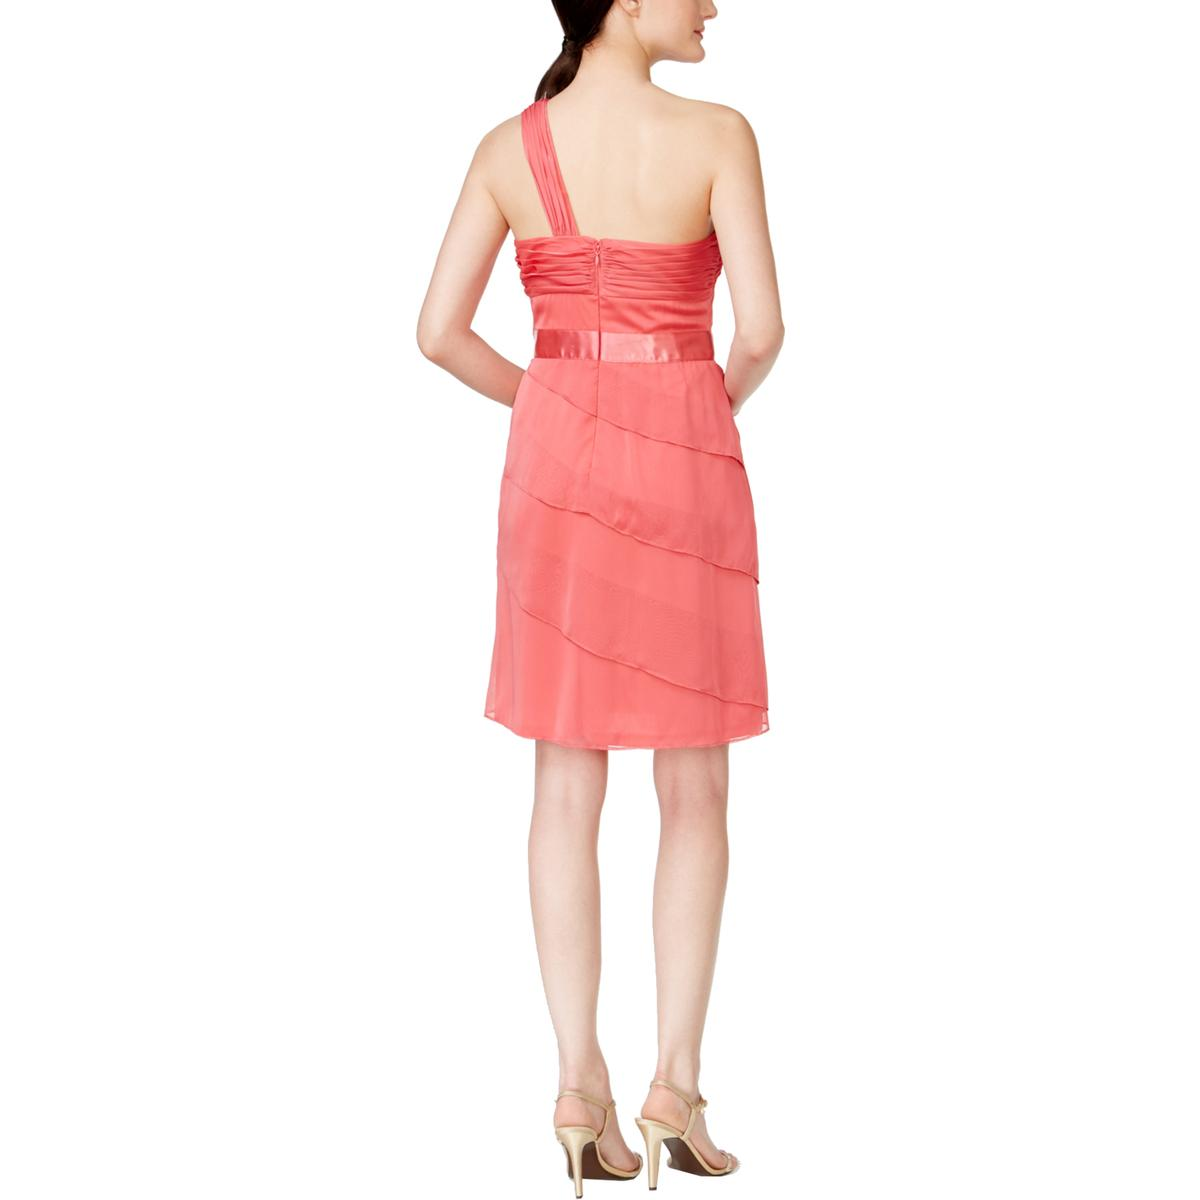 Adrianna-Papell-Womens-Tiered-One-Shoulder-Party-Cocktail-Dress-BHFO-6662 thumbnail 12